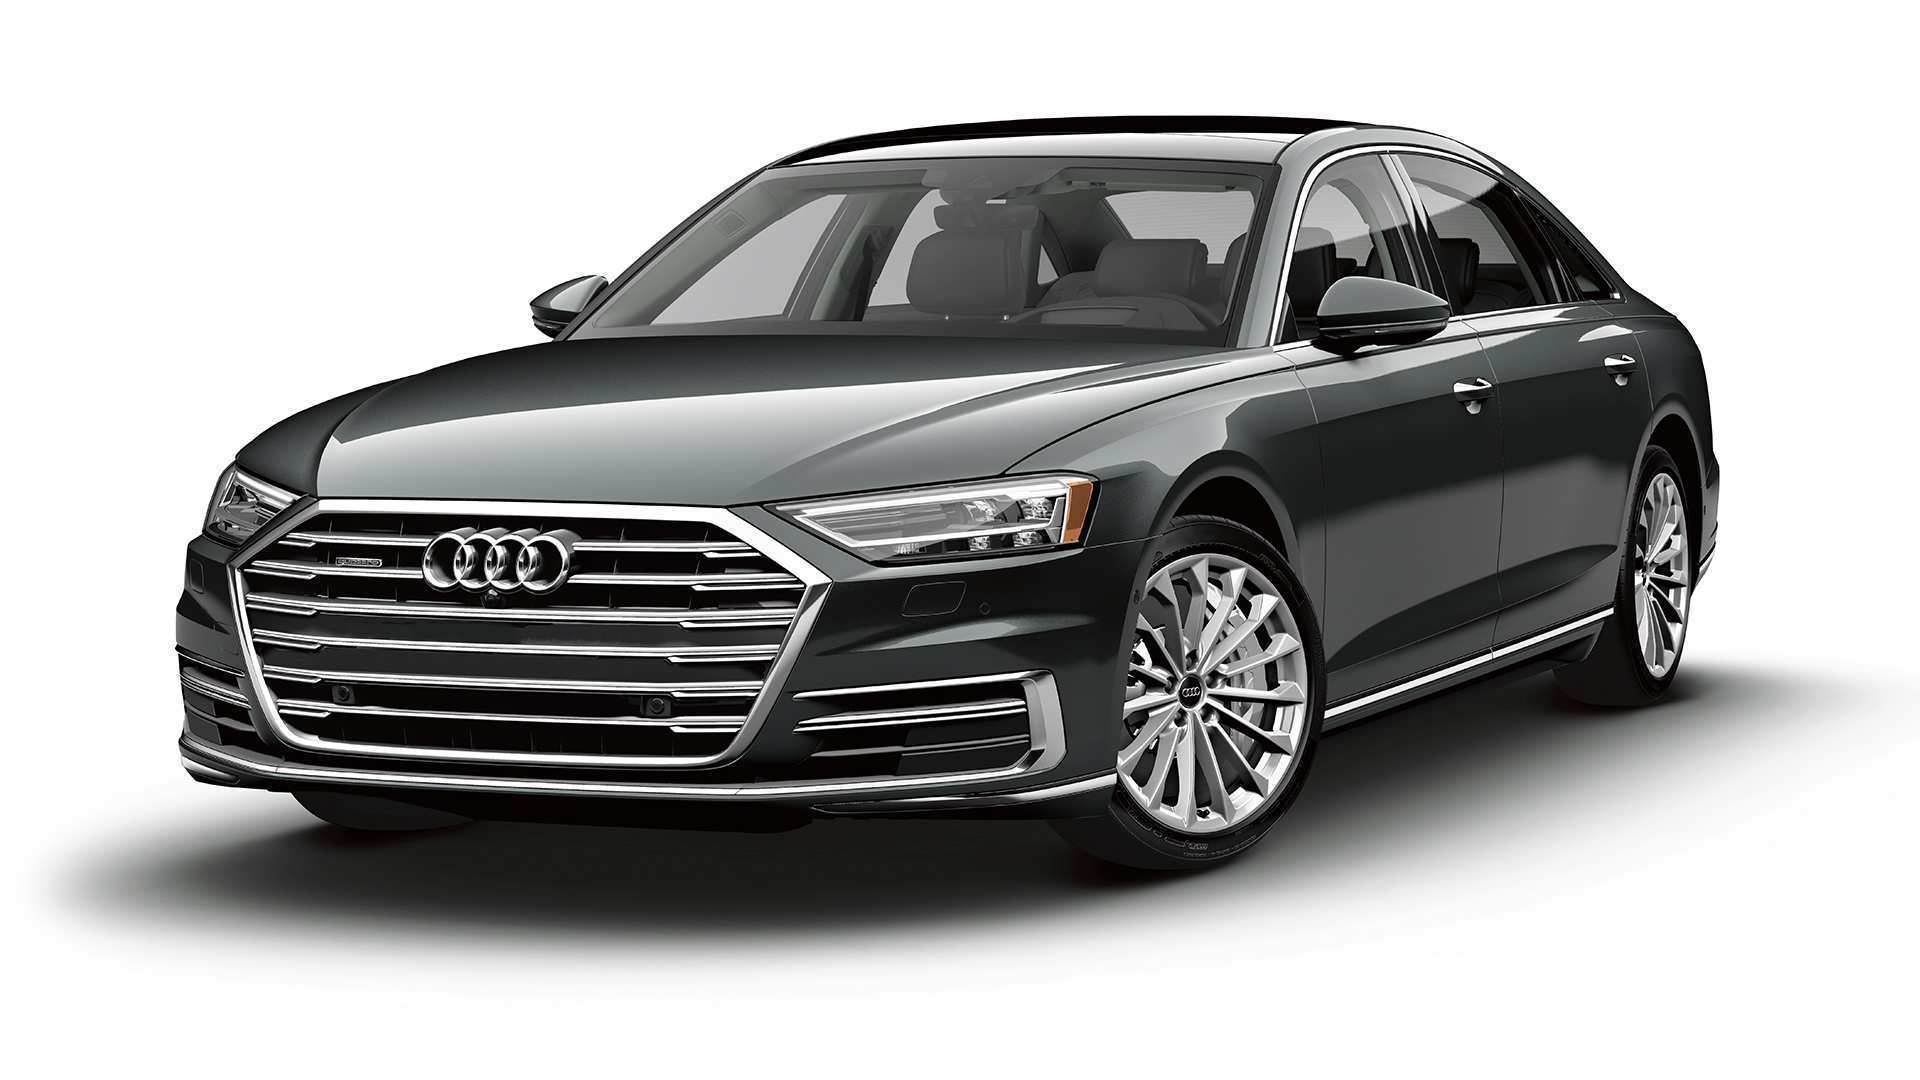 59 New 2019 Audi Style with 2019 Audi